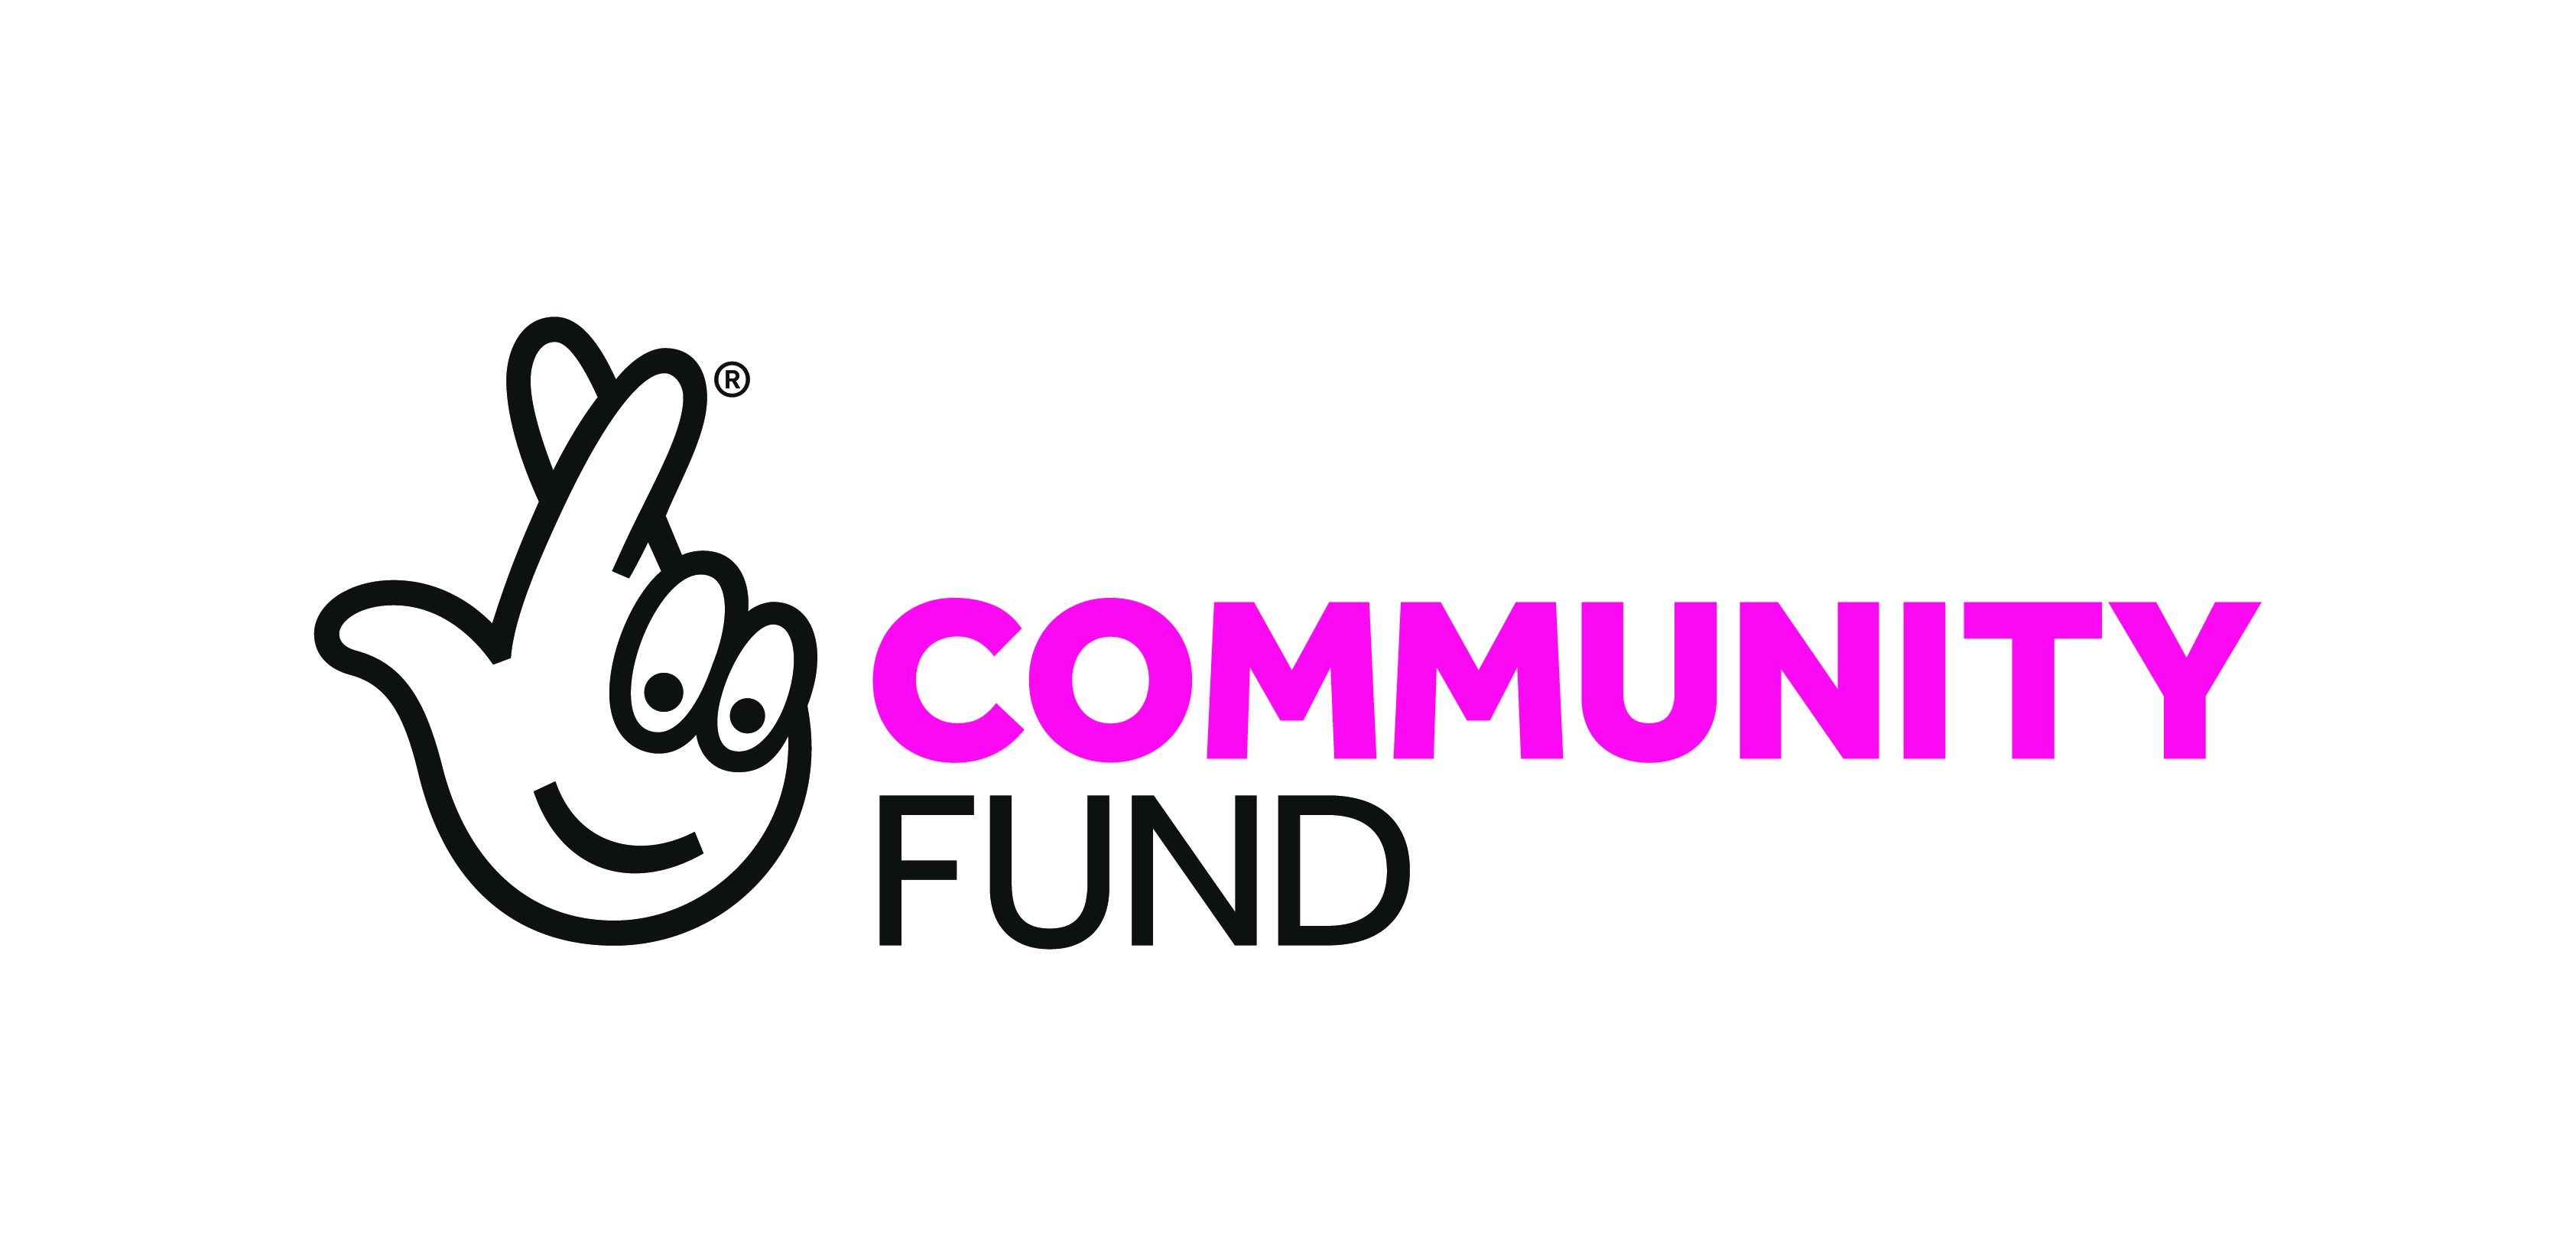 Download our logo to tell people about your National Lottery funding | The National Lottery Community Fund